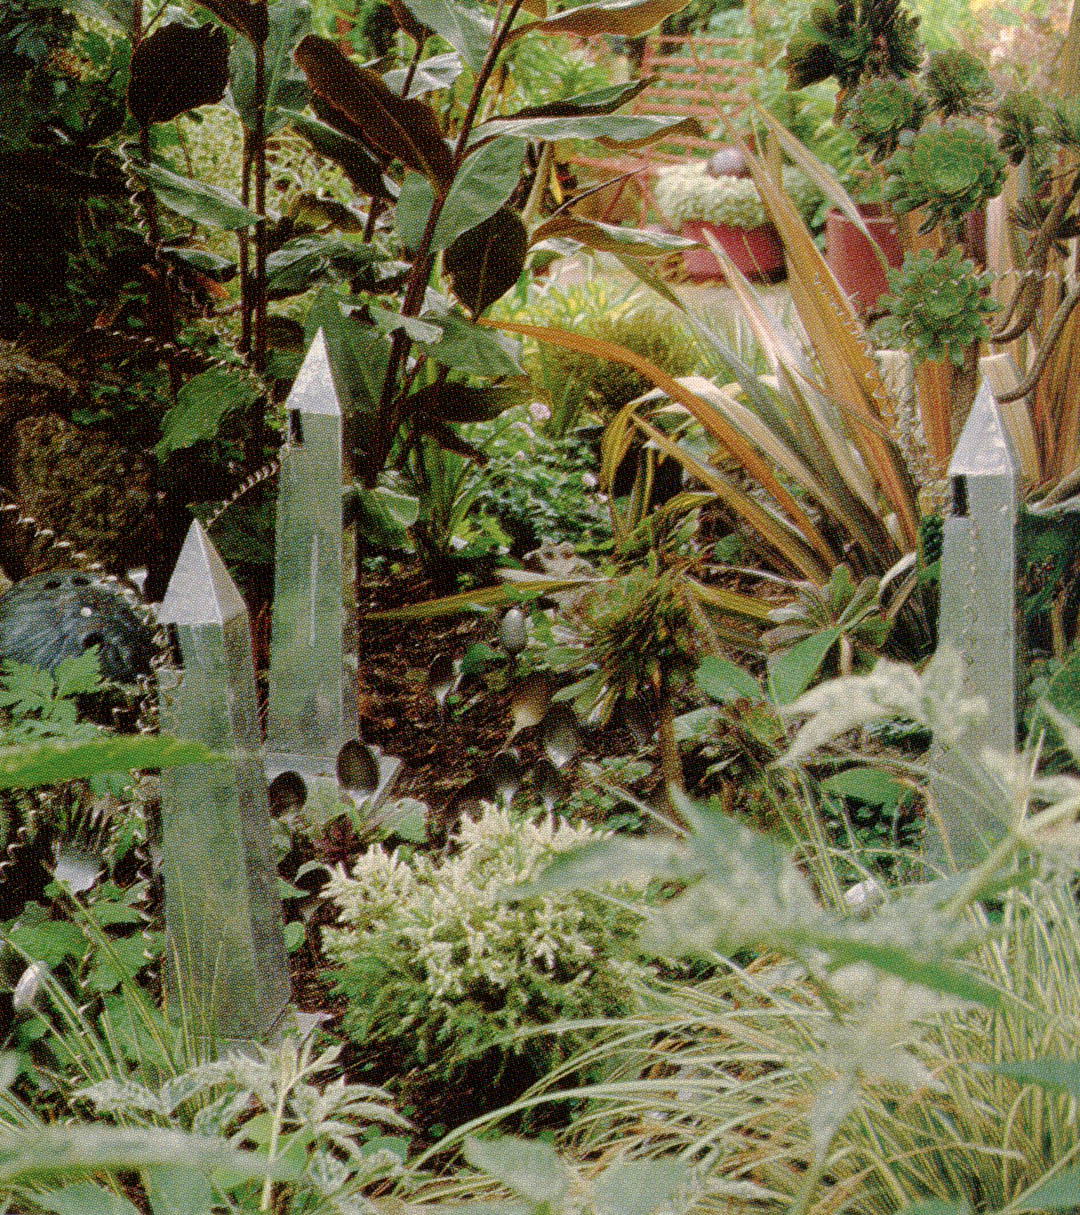 Pacific Horticulture Society | Marcia\'s Garden: a Conversation